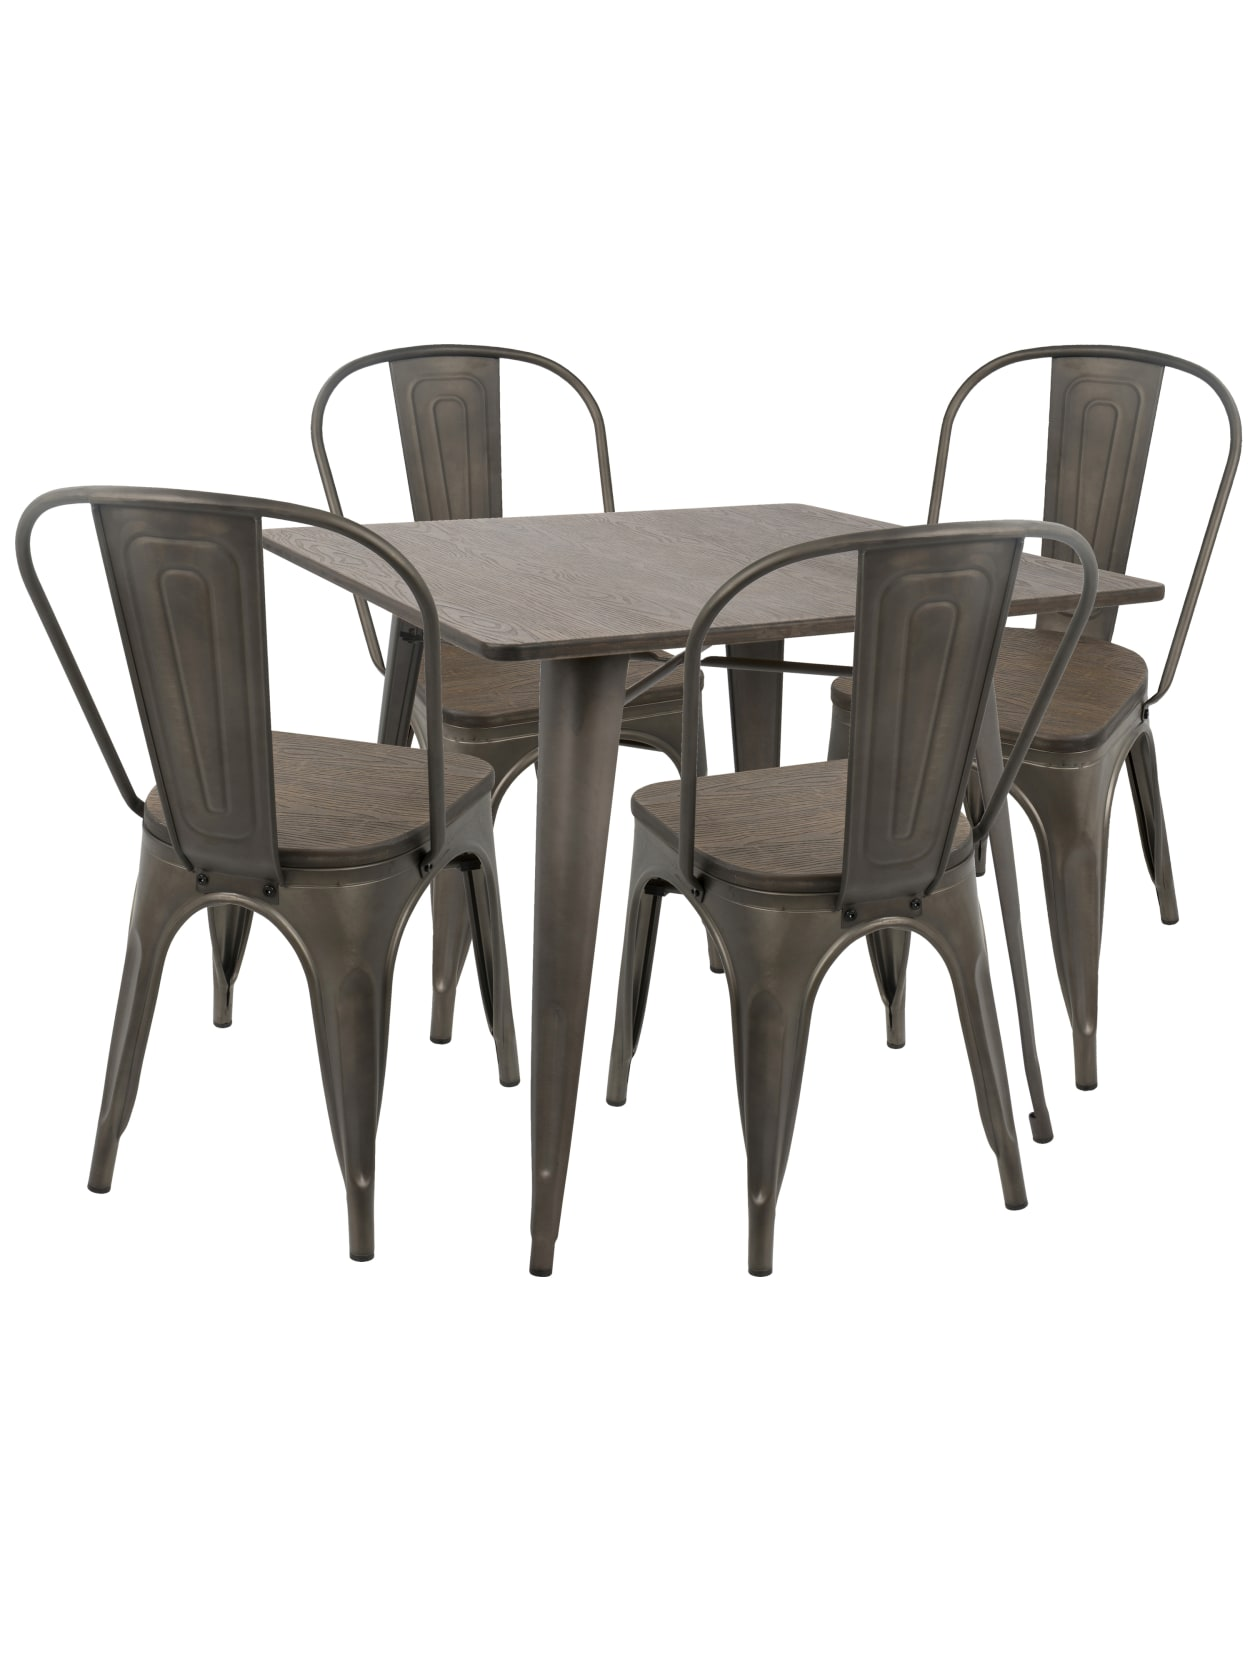 Lumisource Oregon Industrial Farmhouse Dining Table With 4 Dining Chairs Antiqueespresso Office Depot